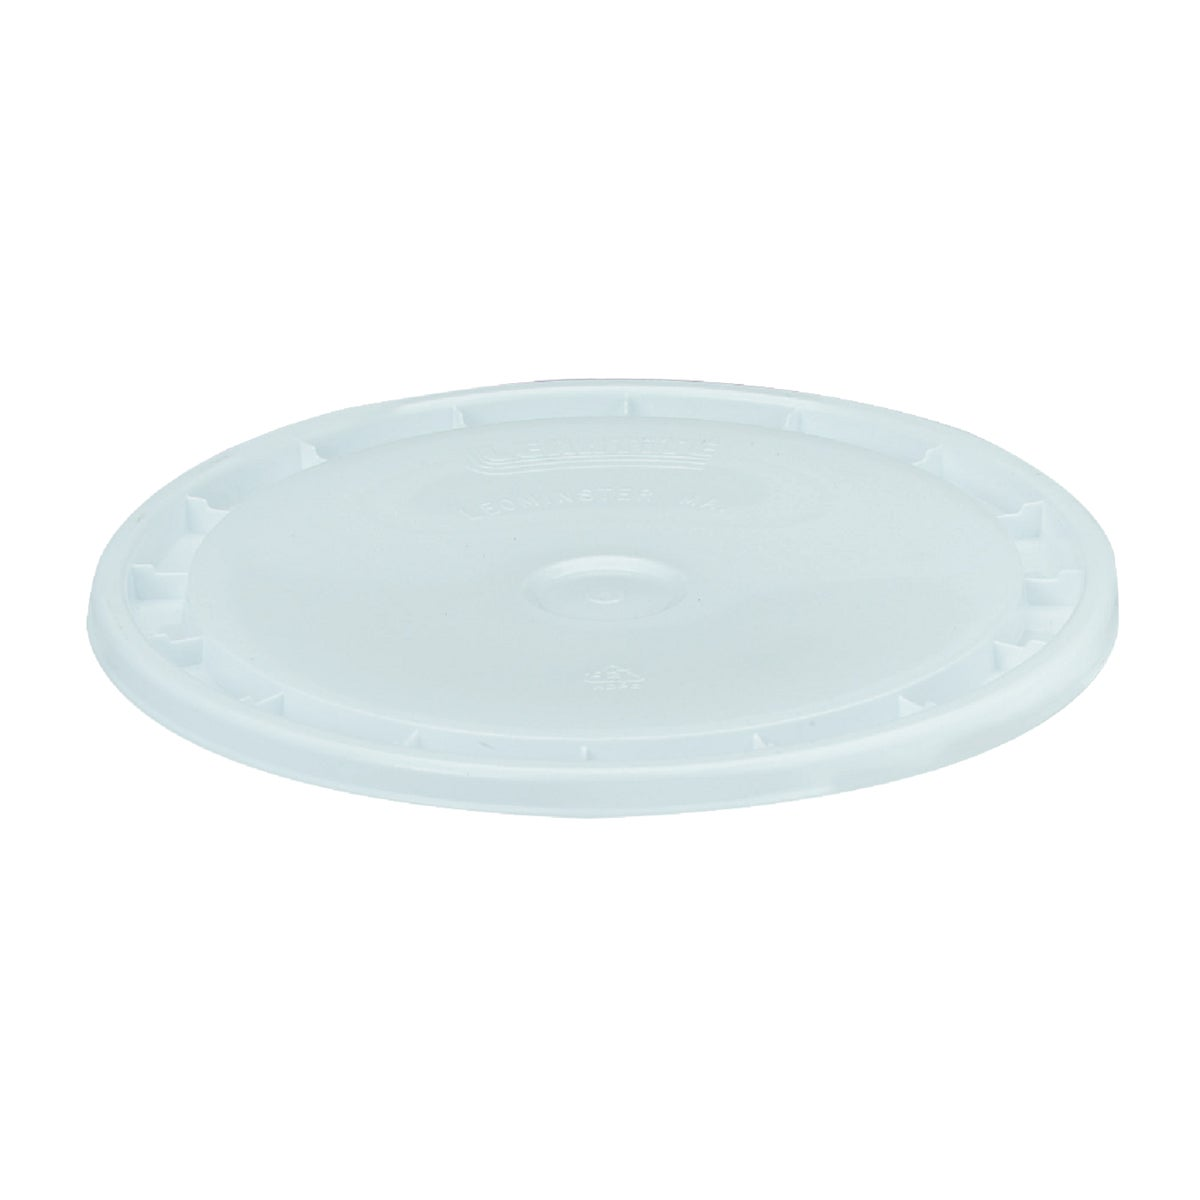 5GAL EASYOFF PLASTIC LID - 6GLD by Leaktite Corporation